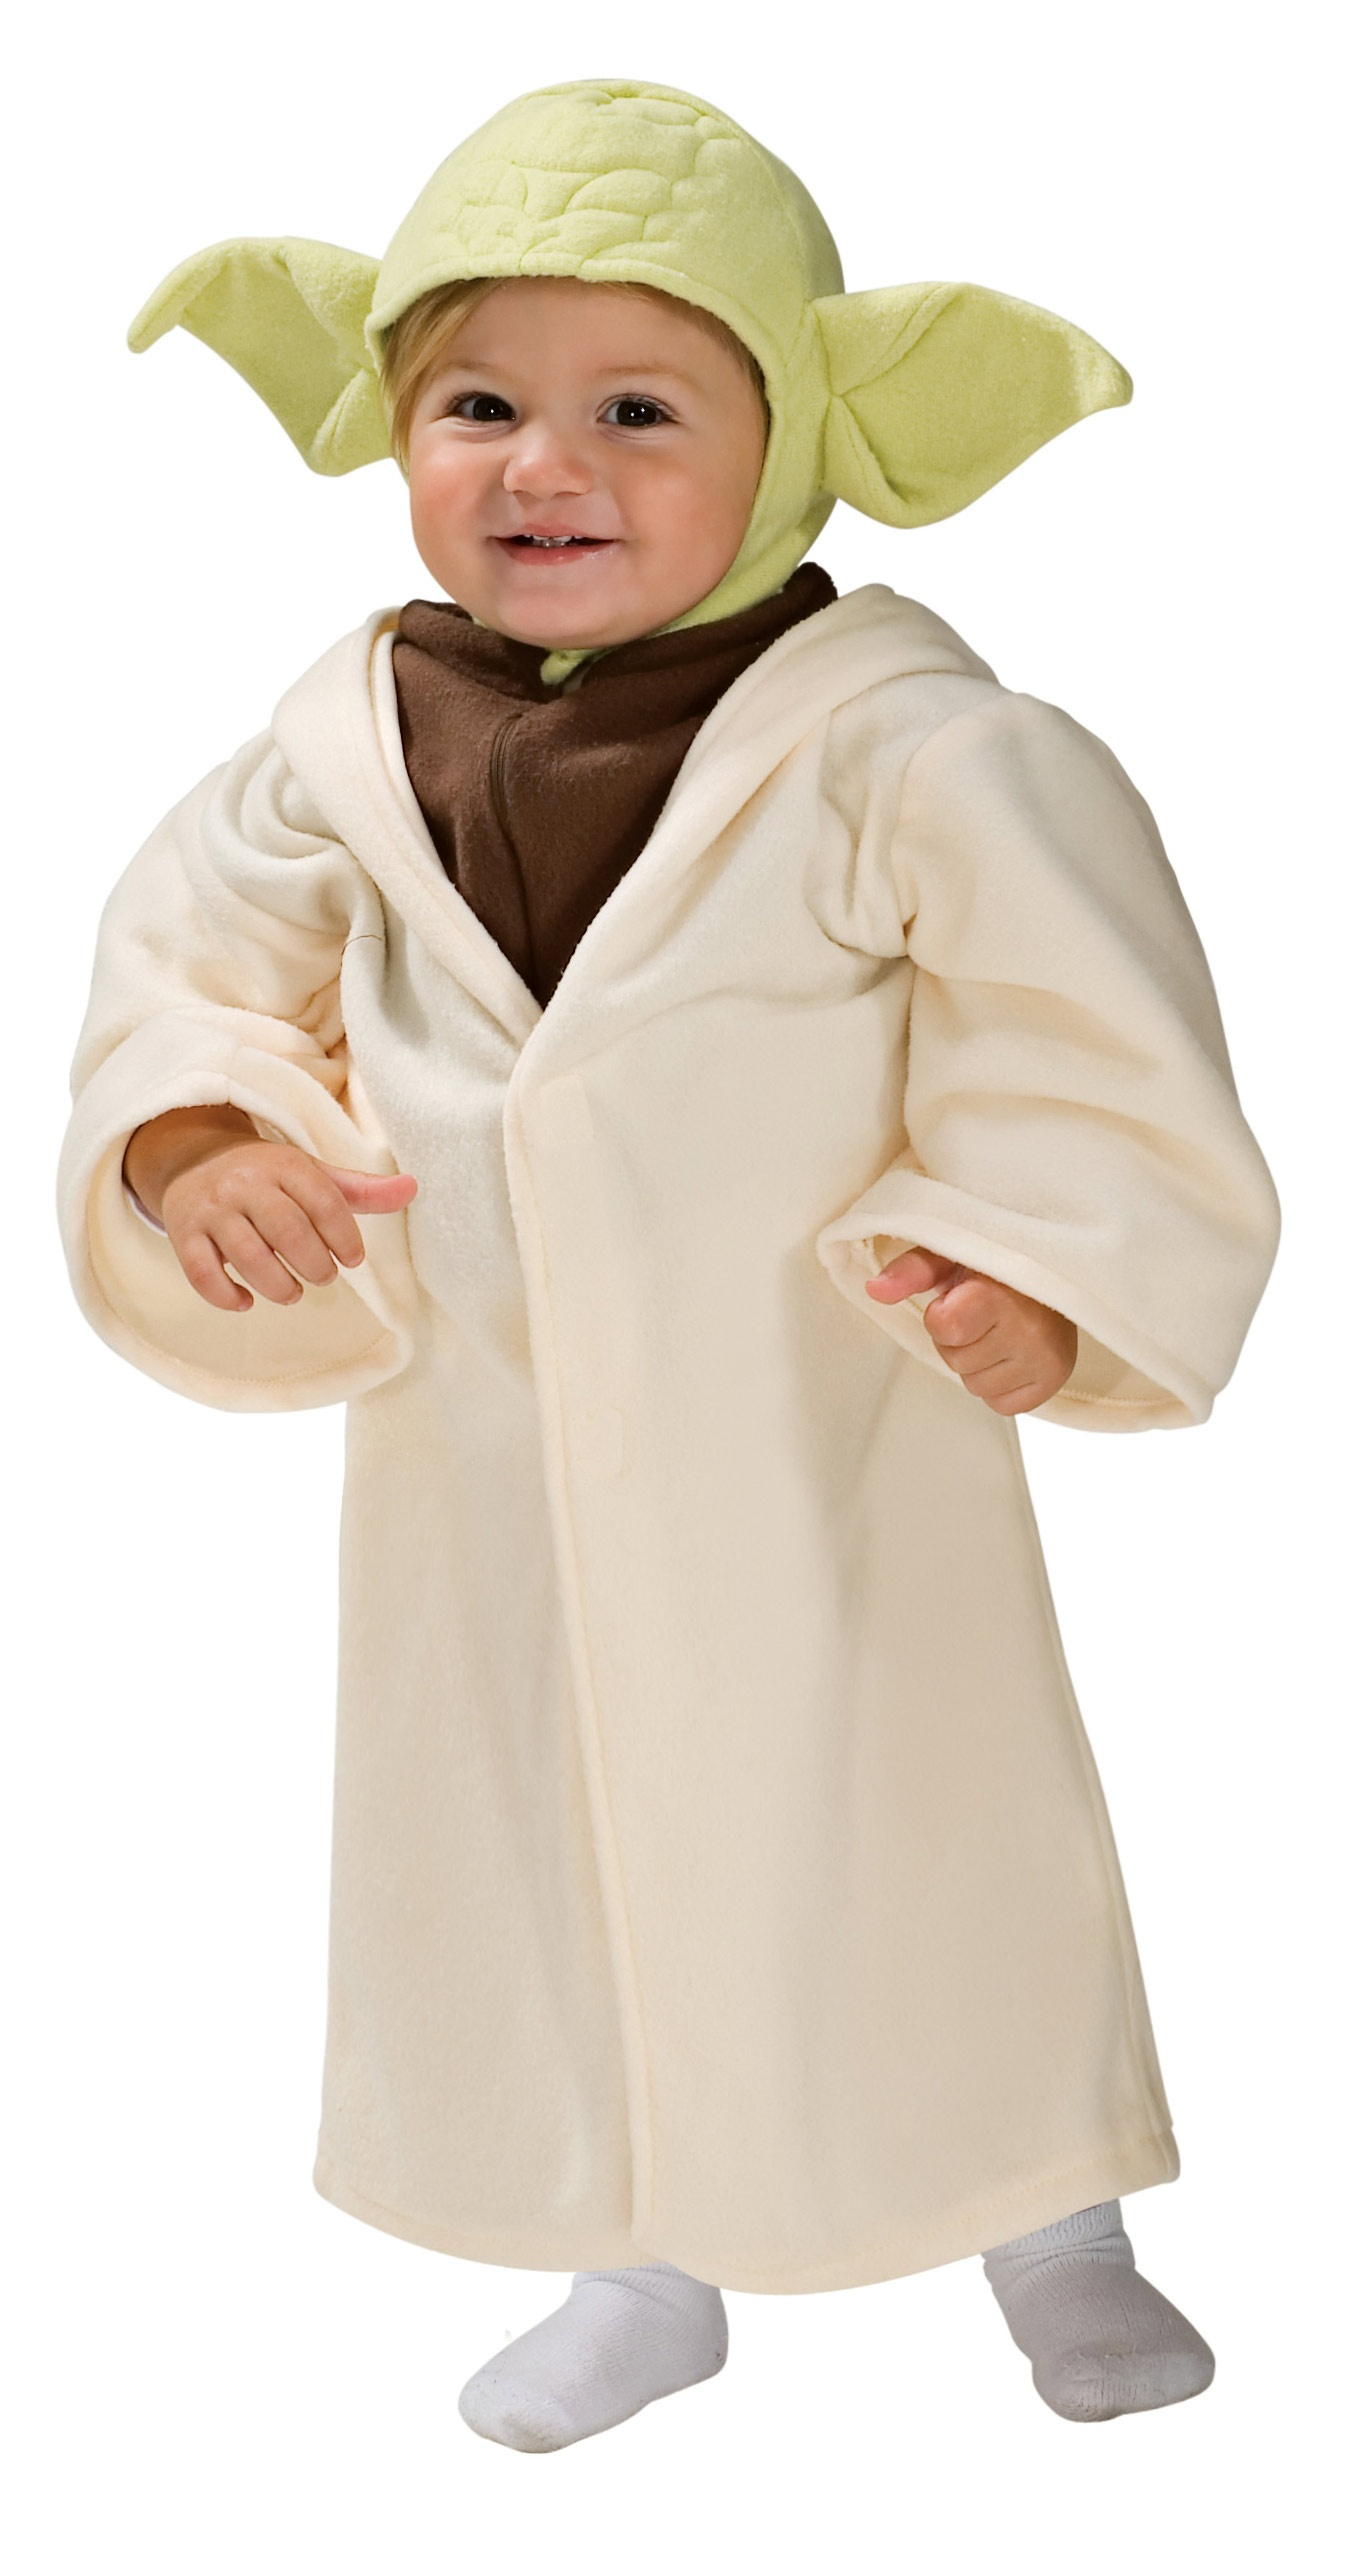 Shop Target for Star Wars Baby Boy Clothing you will love at great low prices. Free shipping & returns plus same-day pick-up in store.